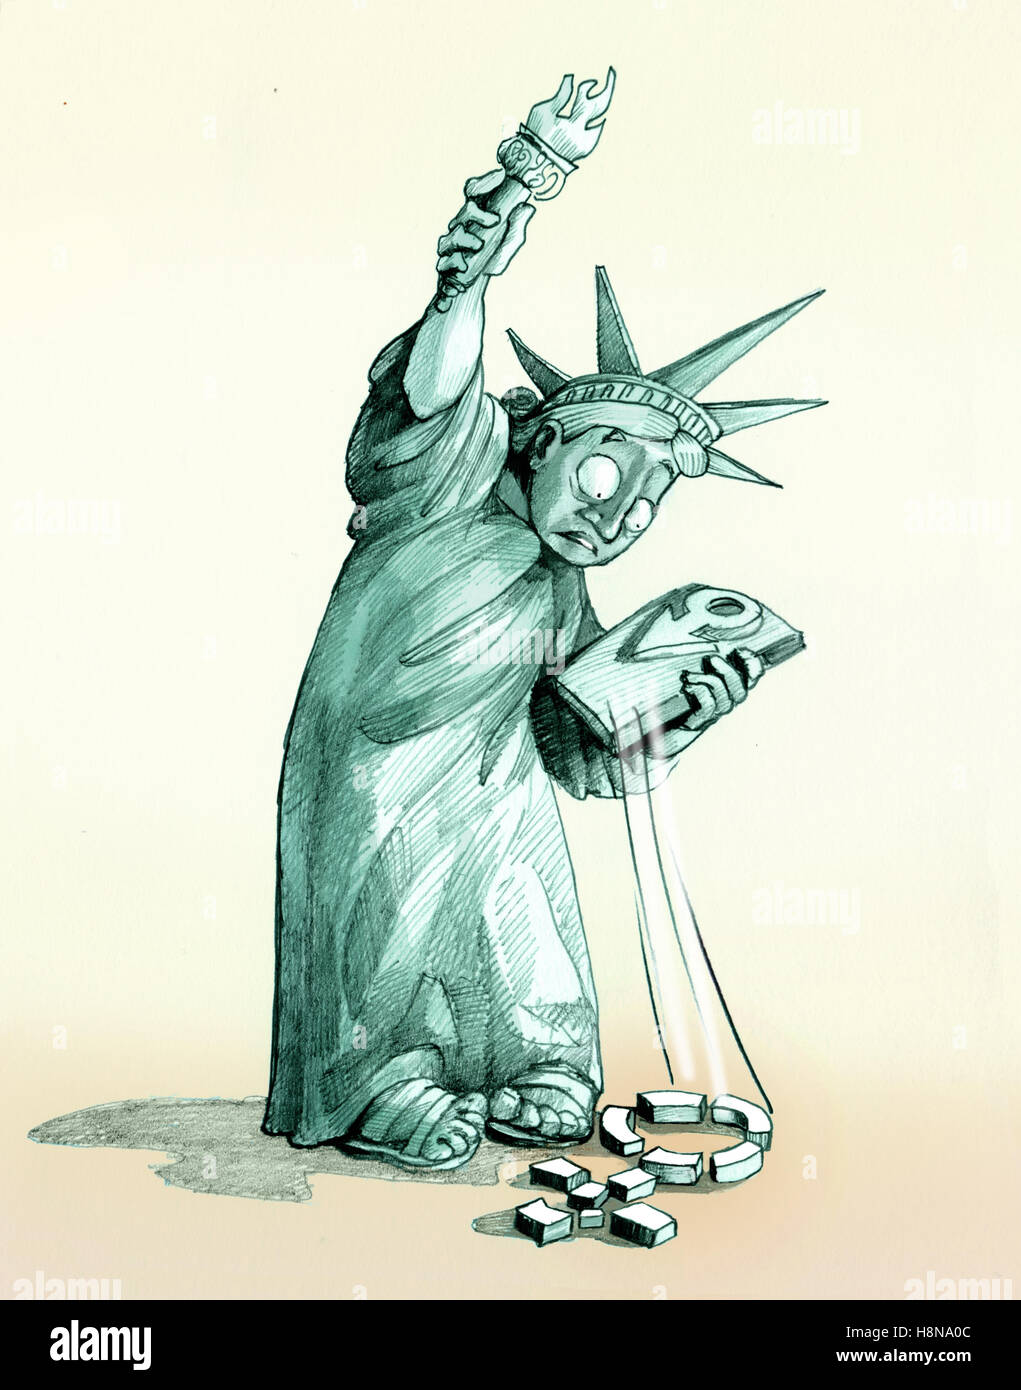 The Statue of Liberty looks shocked the woman's symbol that has dropped on the ground and that is now broken - Stock Image